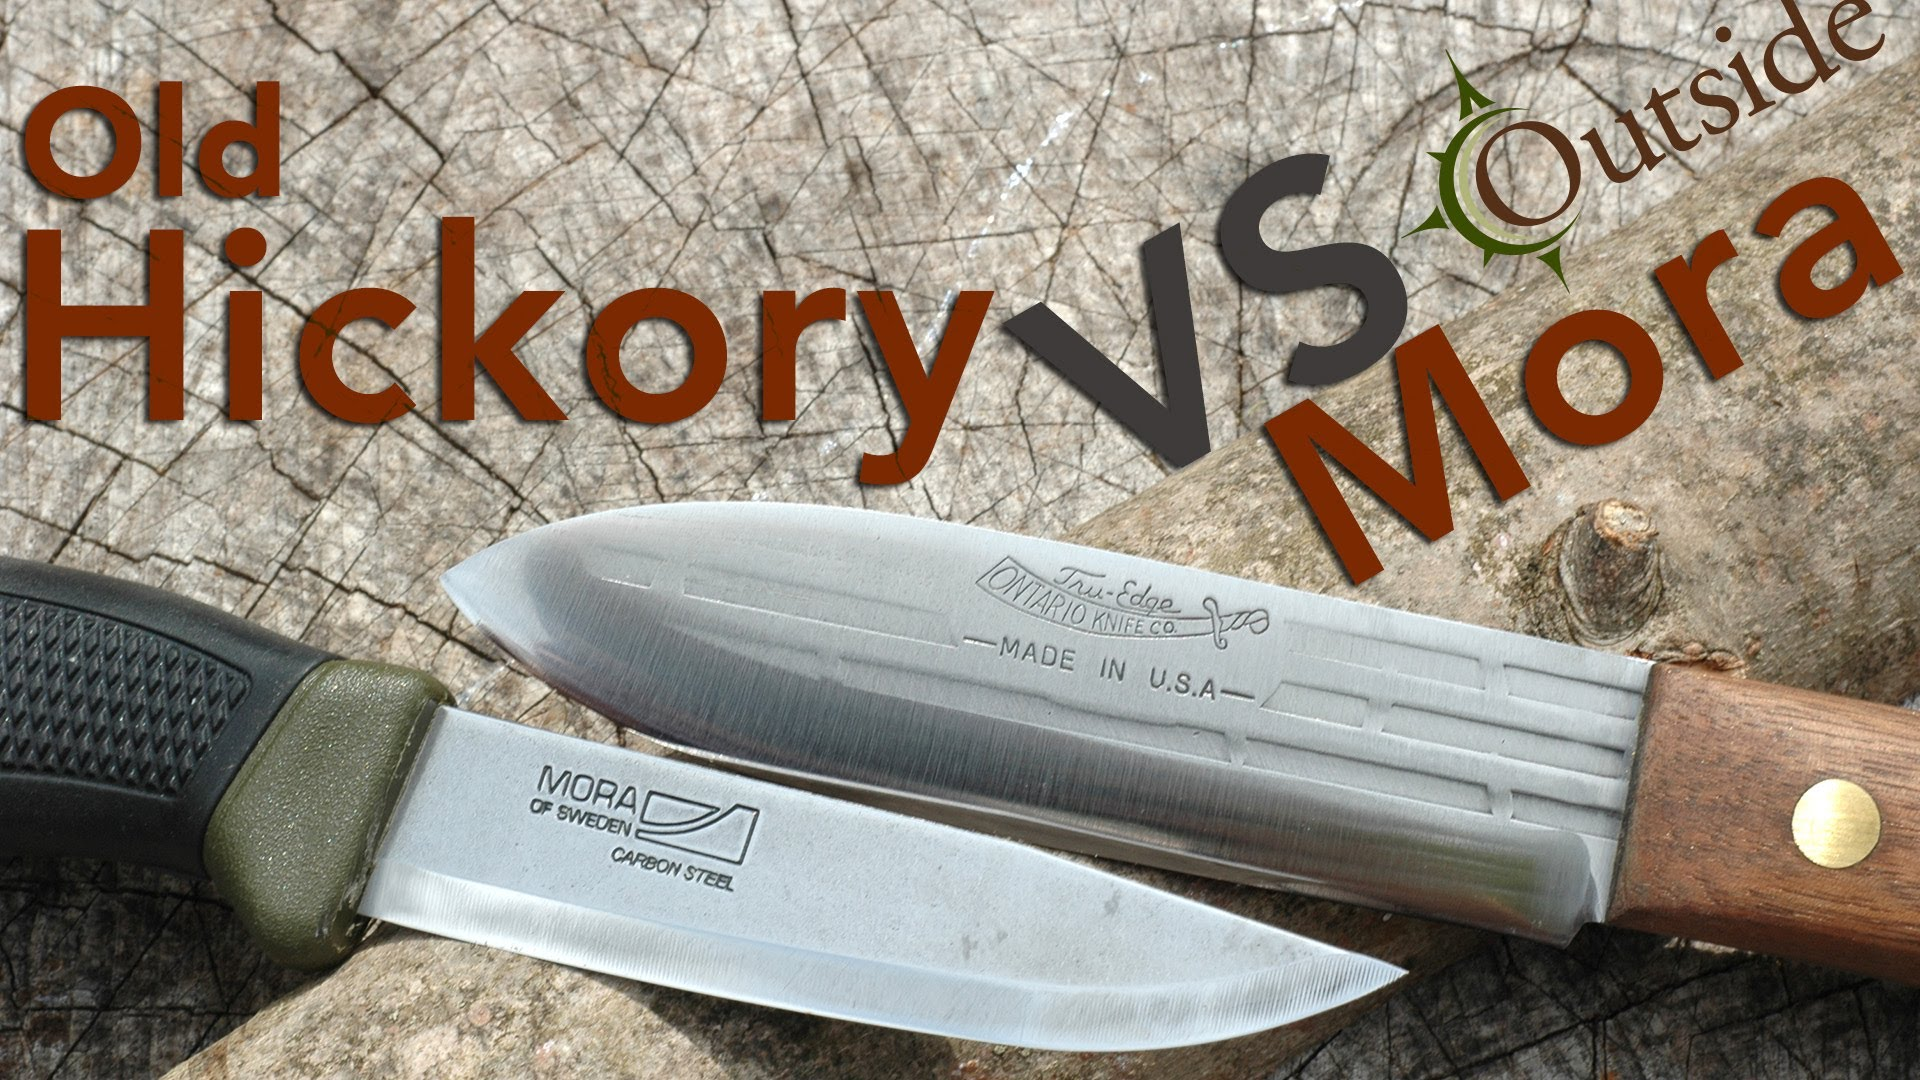 Boat Rental Old Hickory Lake | Old Hickory | Old Hickory Butcher Knives